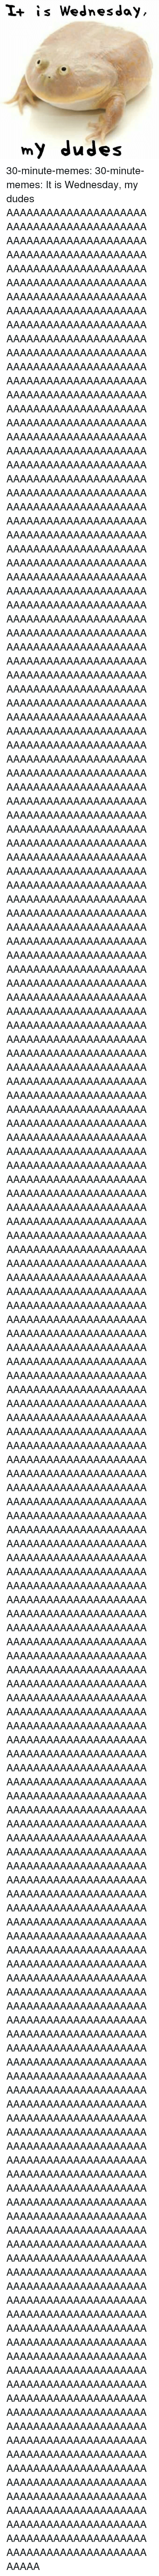 It Is Wednesday: I+ is Wednesday  my dudes 30-minute-memes: 30-minute-memes: It is Wednesday, my dudes AAAAAAAAAAAAAAAAAAAAAAAAAAAAAAAAAAAAAAAAAAAAAAAAAAAAAAAAAAAAAAAAAAAAAAAAAAAAAAAAAAAAAAAAAAAAAAAAAAAAAAAAAAAAAAAAAAAAAAAAAAAAAAAAAAAAAAAAAAAAAAAAAAAAAAAAAAAAAAAAAAAAAAAAAAAAAAAAAAAAAAAAAAAAAAAAAAAAAAAAAAAAAAAAAAAAAAAAAAAAAAAAAAAAAAAAAAAAAAAAAAAAAAAAAAAAAAAAAAAAAAAAAAAAAAAAAAAAAAAAAAAAAAAAAAAAAAAAAAAAAAAAAAAAAAAAAAAAAAAAAAAAAAAAAAAAAAAAAAAAAAAAAAAAAAAAAAAAAAAAAAAAAAAAAAAAAAAAAAAAAAAAAAAAAAAAAAAAAAAAAAAAAAAAAAAAAAAAAAAAAAAAAAAAAAAAAAAAAAAAAAAAAAAAAAAAAAAAAAAAAAAAAAAAAAAAAAAAAAAAAAAAAAAAAAAAAAAAAAAAAAAAAAAAAAAAAAAAAAAAAAAAAAAAAAAAAAAAAAAAAAAAAAAAAAAAAAAAAAAAAAAAAAAAAAAAAAAAAAAAAAAAAAAAAAAAAAAAAAAAAAAAAAAAAAAAAAAAAAAAAAAAAAAAAAAAAAAAAAAAAAAAAAAAAAAAAAAAAAAAAAAAAAAAAAAAAAAAAAAAAAAAAAAAAAAAAAAAAAAAAAAAAAAAAAAAAAAAAAAAAAAAAAAAAAAAAAAAAAAAAAAAAAAAAAAAAAAAAAAAAAAAAAAAAAAAAAAAAAAAAAAAAAAAAAAAAAAAAAAAAAAAAAAAAAAAAAAAAAAAAAAAAAAAAAAAAAAAAAAAAAAAAAAAAAAAAAAAAAAAAAAAAAAAAAAAAAAAAAAAAAAAAAAAAAAAAAAAAAAAAAAAAAAAAAAAAAAAAAAAAAAAAAAAAAAAAAAAAAAAAAAAAAAAAAAAAAAAAAAAAAAAAAAAAAAAAAAAAAAAAAAAAAAAAAAAAAAAAAAAAAAAAAAAAAAAAAAAAAAAAAAAAAAAAAAAAAAAAAAAAAAAAAAAAAAAAAAAAAAAAAAAAAAAAAAAAAAAAAAAAAAAAAAAAAAAAAAAAAAAAAAAAAAAAAAAAAAAAAAAAAAAAAAAAAAAAAAAAAAAAAAAAAAAAAAAAAAAAAAAAAAAAAAAAAAAAAAAAAAAAAAAAAAAAAAAAAAAAAAAAAAAAAAAAAAAAAAAAAAAAAAAAAAAAAAAAAAAAAAAAAAAAAAAAAAAAAAAAAAAAAAAAAAAAAAAAAAAAAAAAAAAAAAAAAAAAAAAAAAAAAAAAAAAAAAAAAAAAAAAAAAAAAAAAAAAAAAAAAAAAAAAAAAAAAAAAAAAAAAAAAAAAAAAAAAAAAAAAAAAAAAAAAAAAAAAAAAAAAAAAAAAAAAAAAAAAAAAAAAAAAAAAAAAAAAAAAAAAAAAAAAAAAAAAAAAAAAAAAAAAAAAAAAAAAAAAAAAAAAAAAAAAAAAAAAAAAAAAAAAAAAAAAAAAAAAAAAAAAAAAAAAAAAAAAAAAAAAAAAAAAAAAAAAAAAAAAAAAAAAAAAAAAAAAAAAAAAAAAAAAAAAAAAAAAAAAAAAAAAAAAAAAAAAAAAAAAAAAAAAAAAAAAAAAAAAAAAAAAAAAAAAAAAAAAAAAAAAAAAAAAAAAAAAAAAAAAAAAAAAAAAAAAAAAAAAAAAAAAAAAAAAAAAAAAAAAAAAAAAAAAAAAAAAAAAAAAAAAAAAAAAAAAAAAAAAAAAAAAAAAAAAAAAAAAAAAAAAAAAAAAAAAAAAAAAAAAAAAAAAAAAAAAAAAAAAAAAAAAAAAAAAAAAAAAAAAAAAAAAAAAAAAAAAAAAAAAAAAAAAAAAAAAAAAAAAAAAAAAAAAAAAAAAAAAAAAAAAA